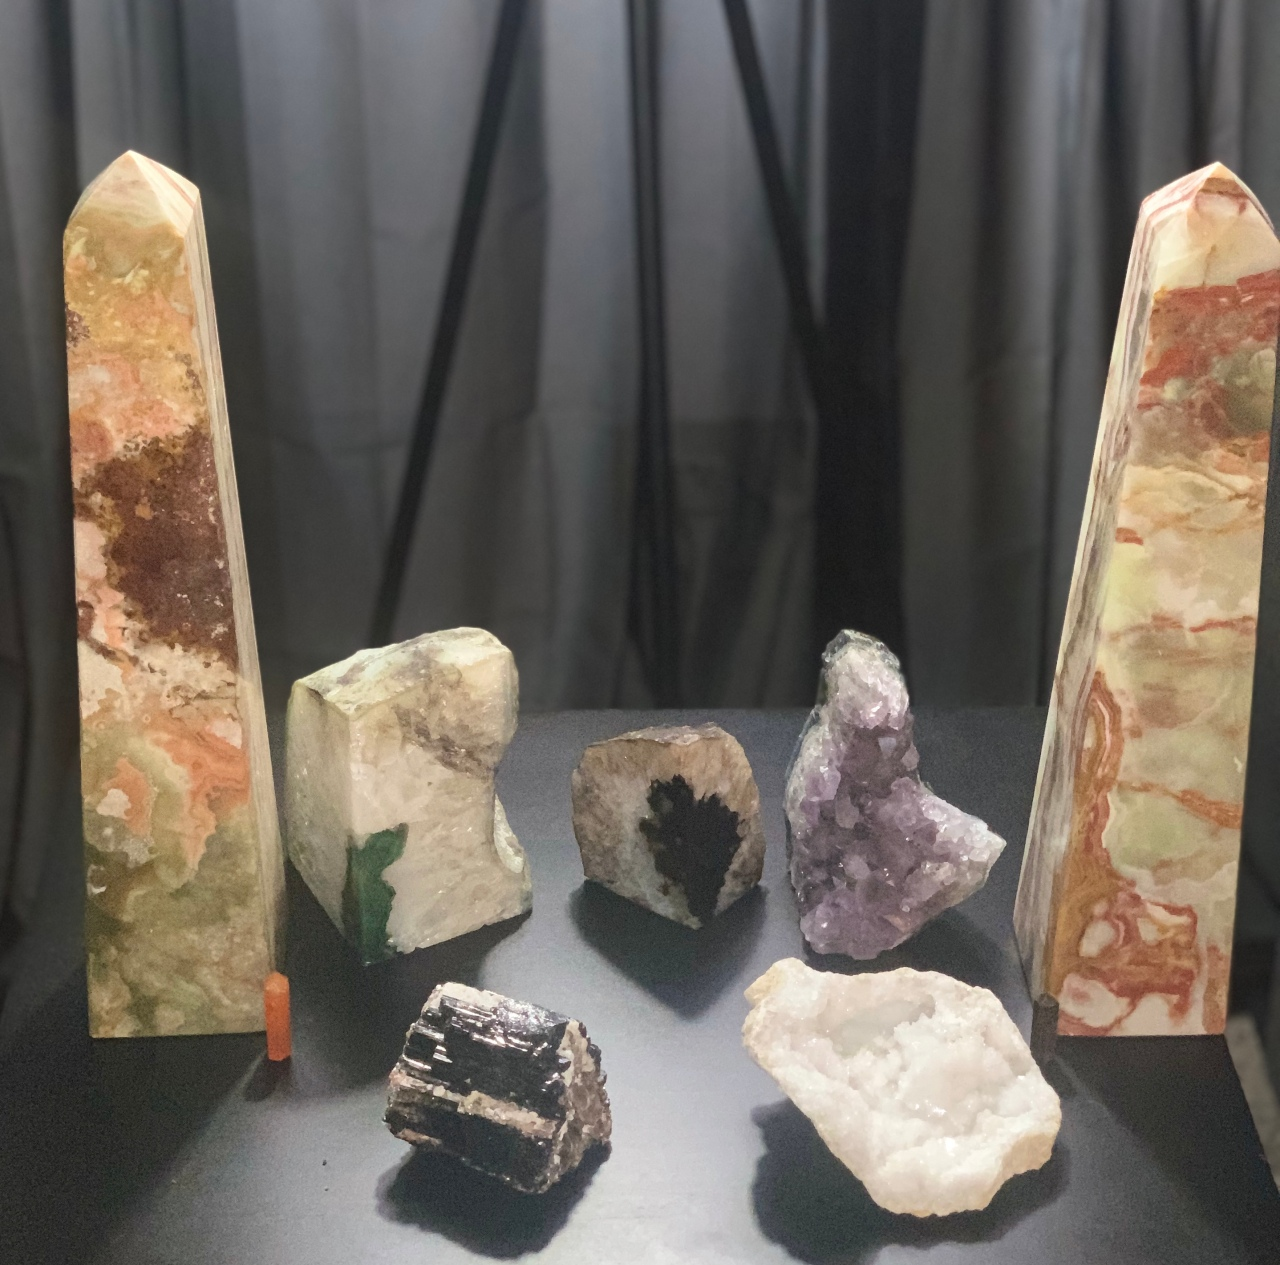 Updated Crystal Collection and Short Reiki Session